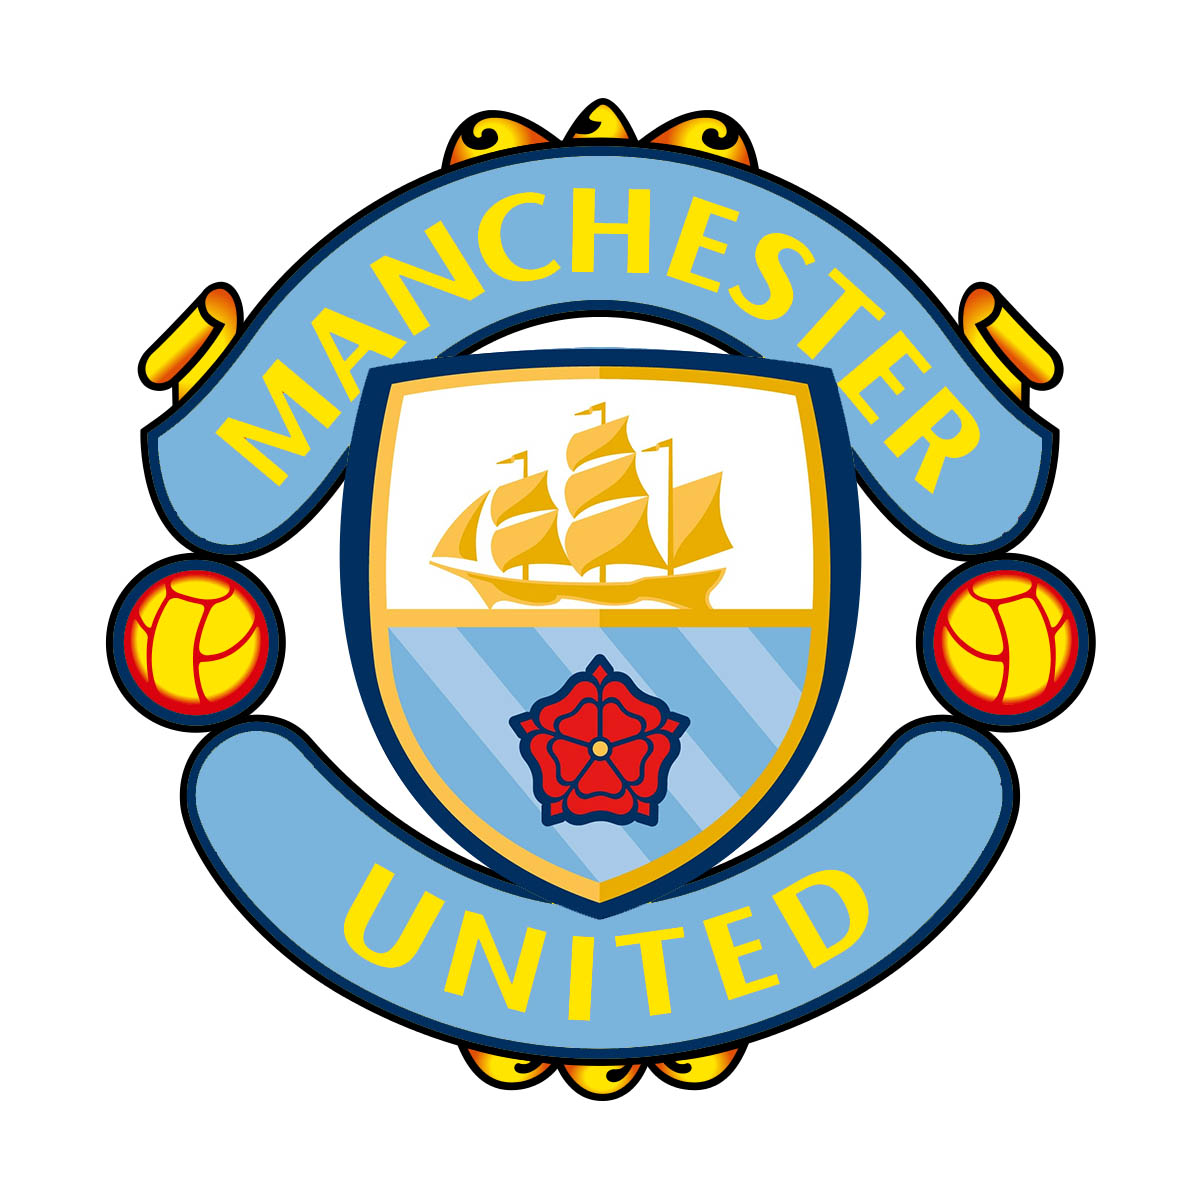 14 rival club badges that will leave you confused, sad and